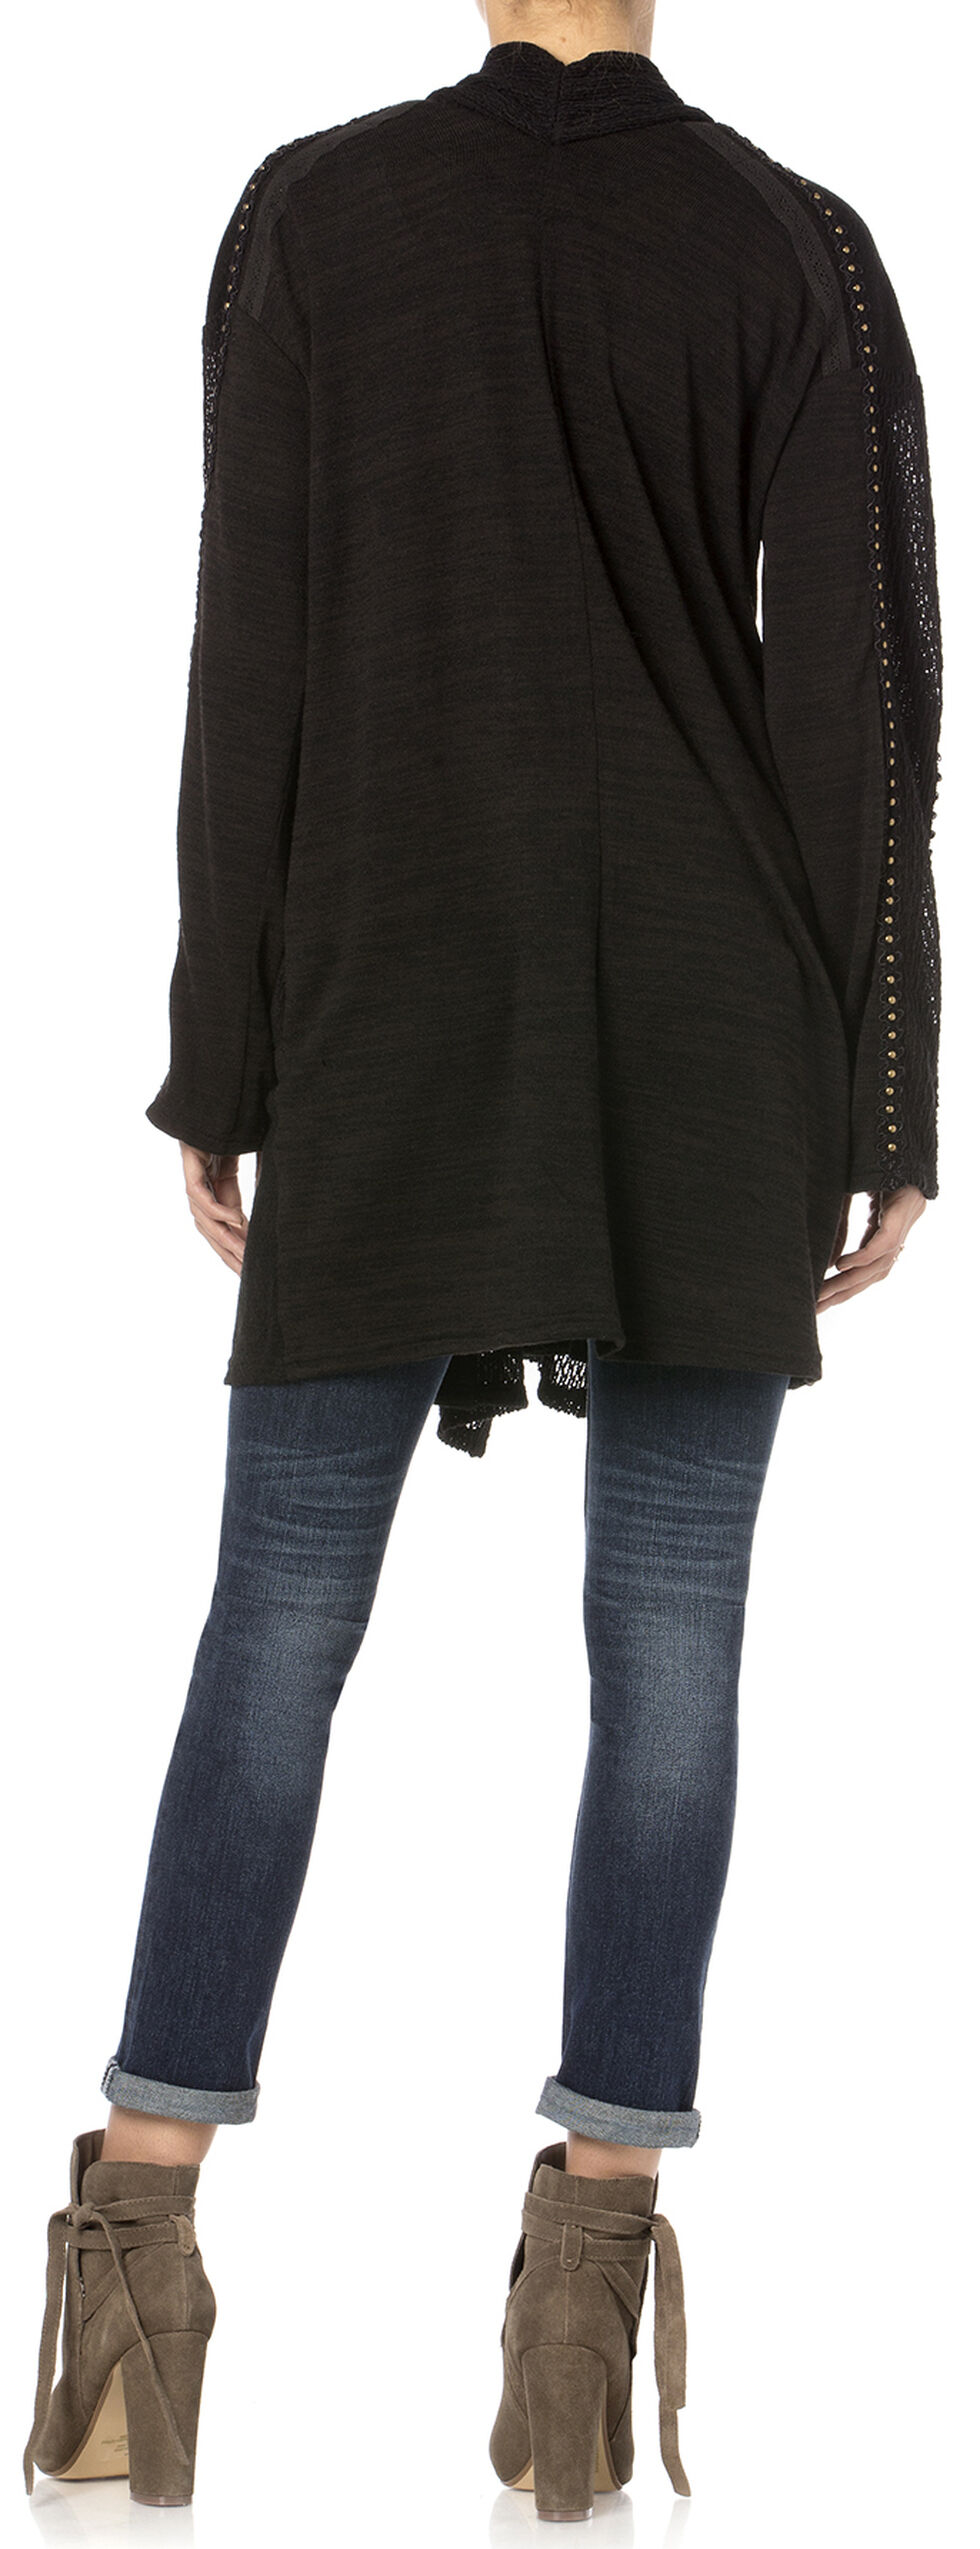 Miss Me On Point Studded Cardigan, , hi-res